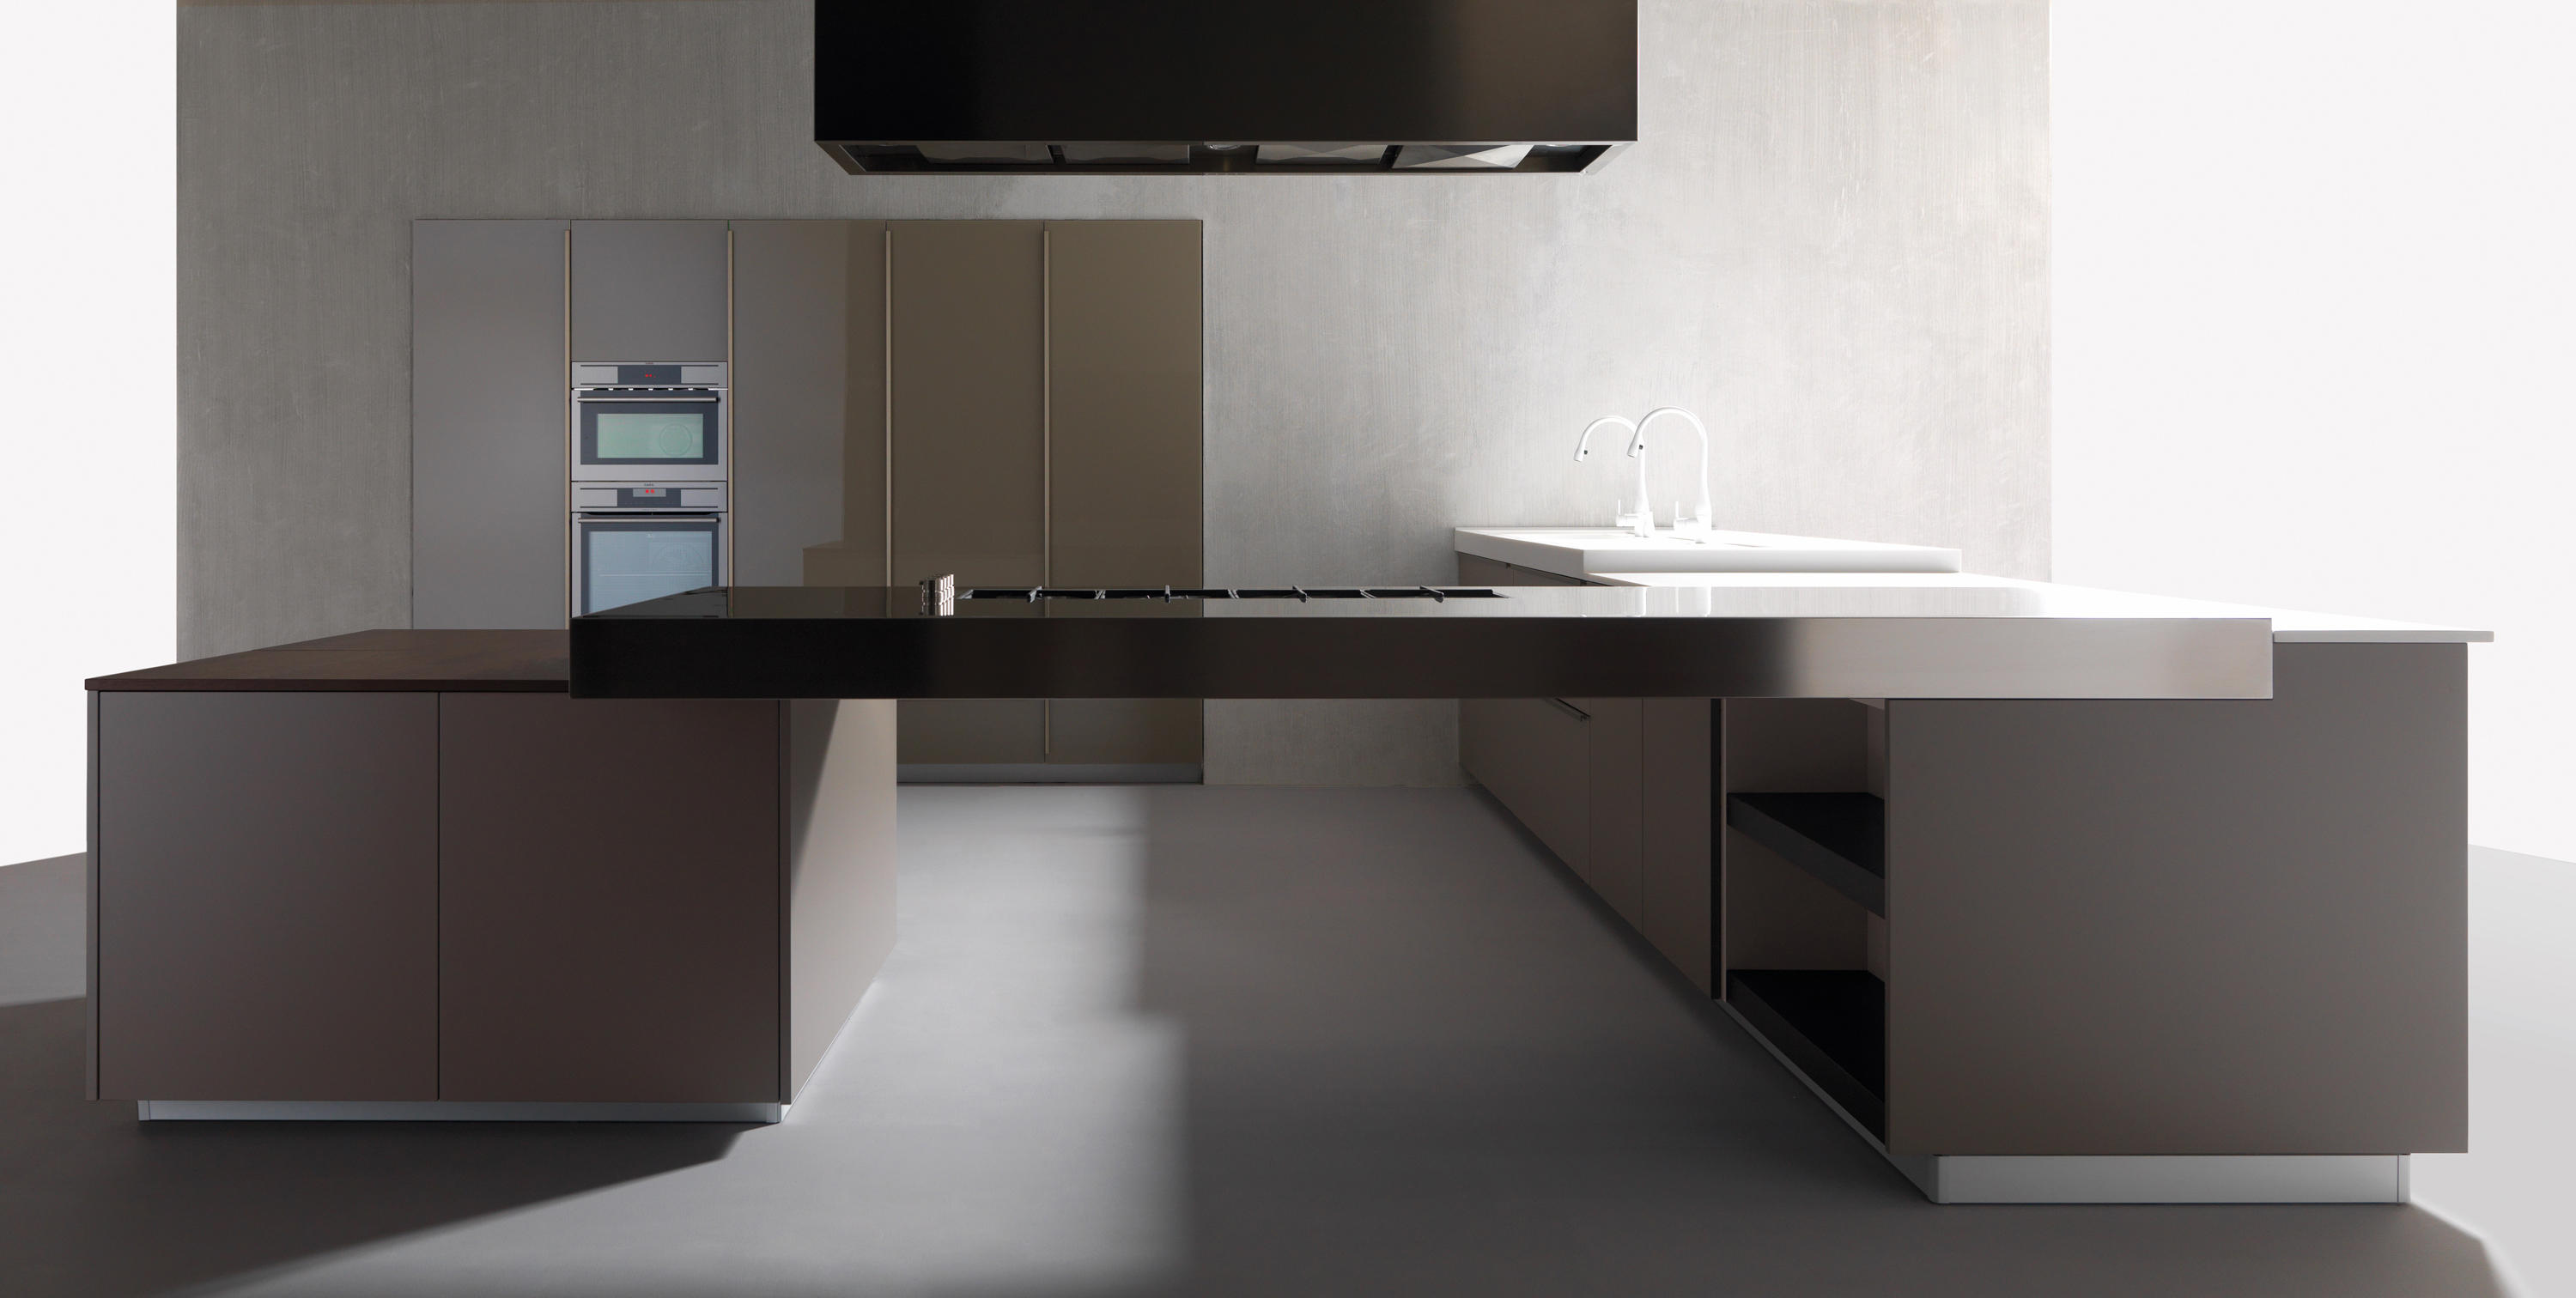 Effeti luce - fitted kitchens from effeti industrie srl | architonic